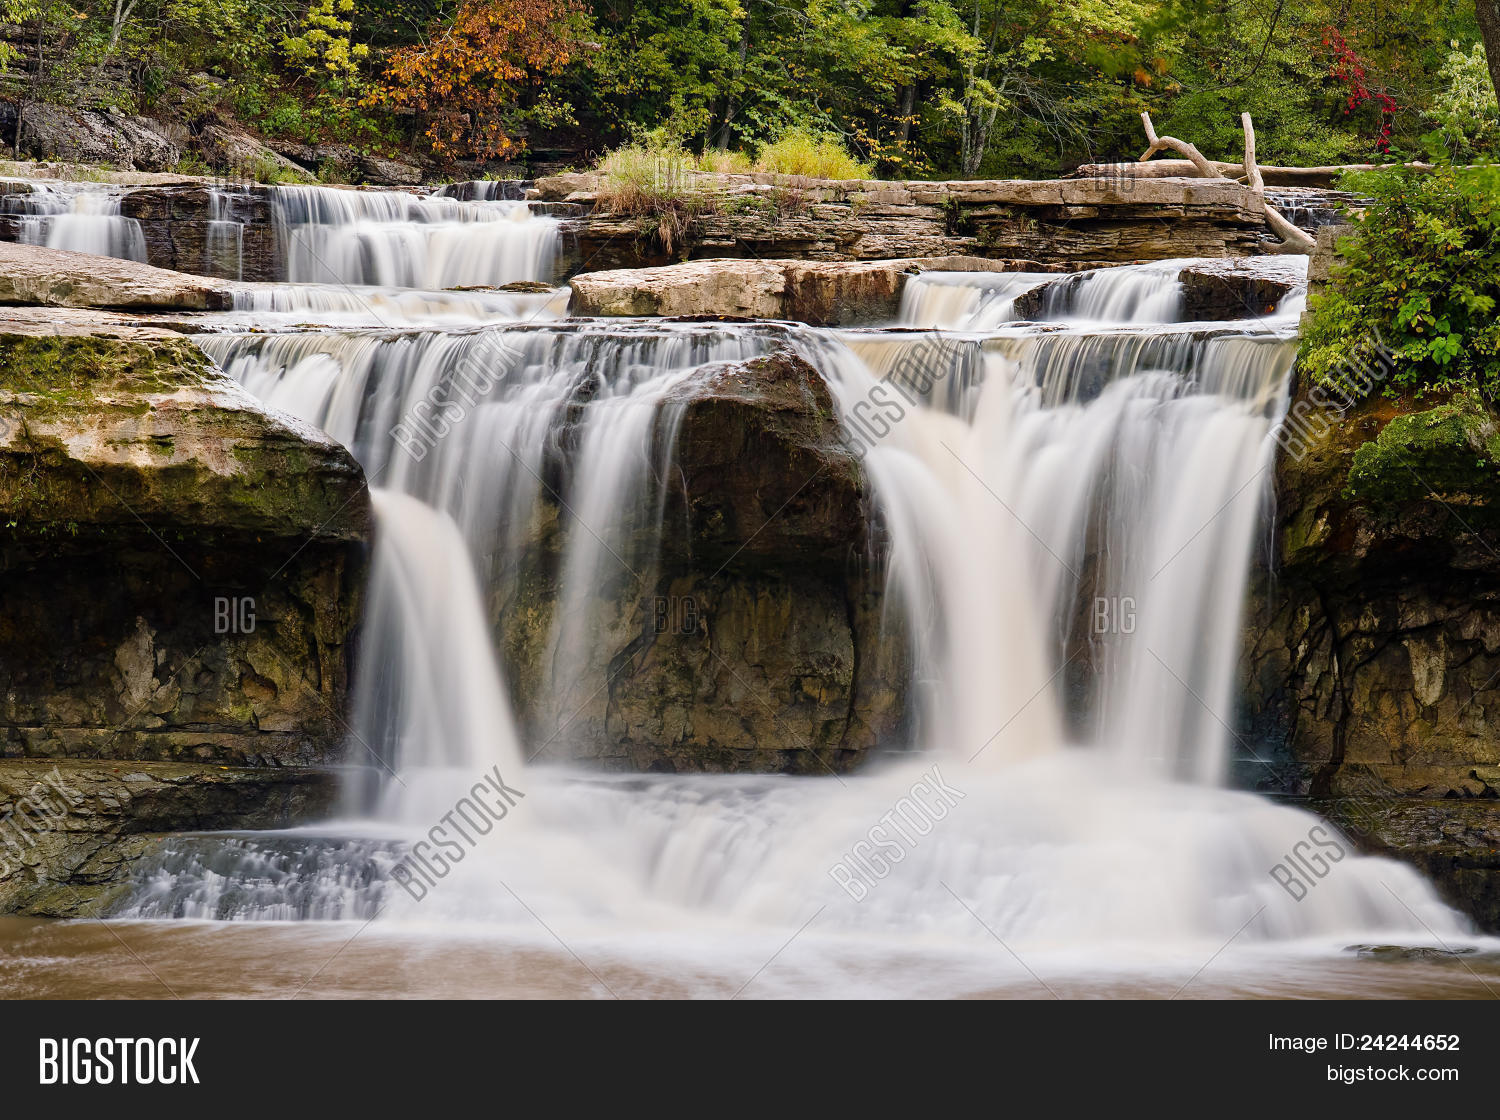 america,area,cataract,cliff,cloverdale,exposure,falls,indiana,landscape,lieber,long,midwest,natural,nature,plunge,plunging,recreation,scenic,splashing,state,united,upper,usa,water,waterfall